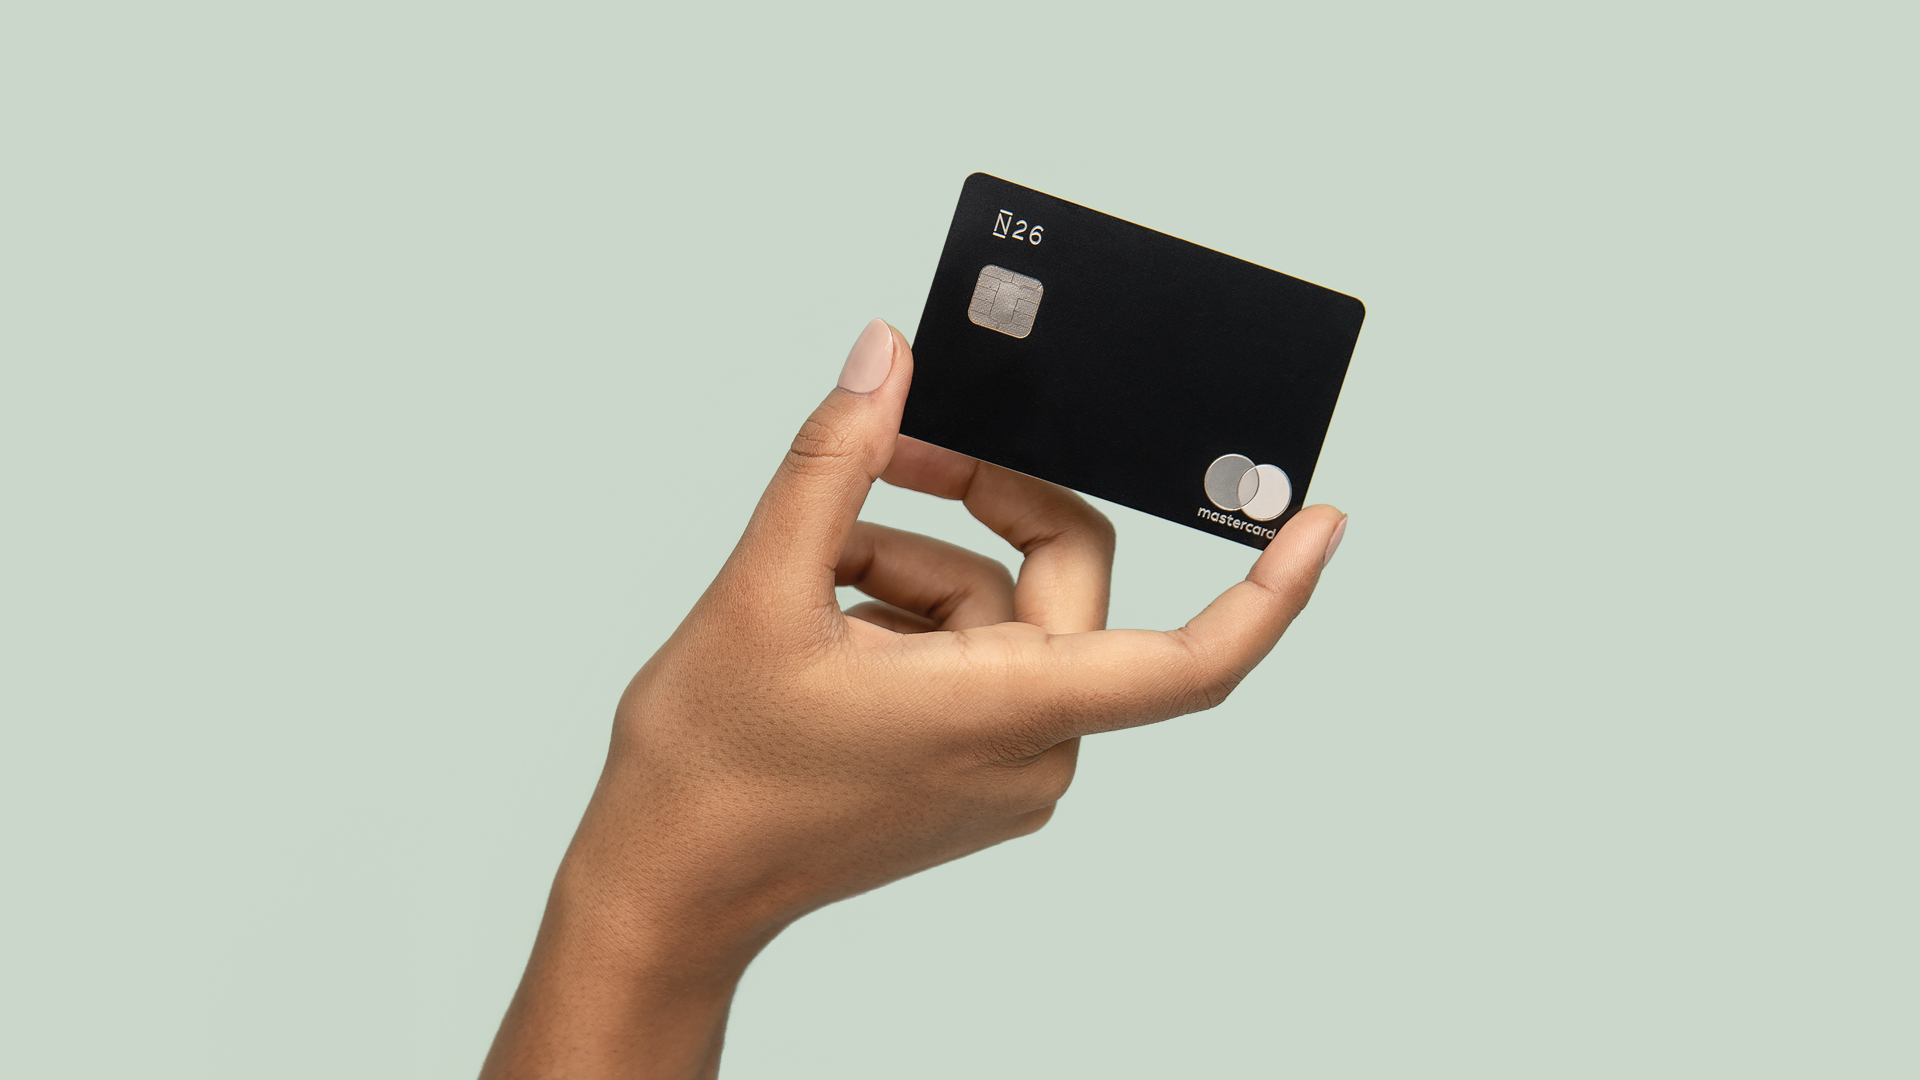 N26 Press Image of our 26 reasons campaign with a hand holding a premium charcoal black metal card